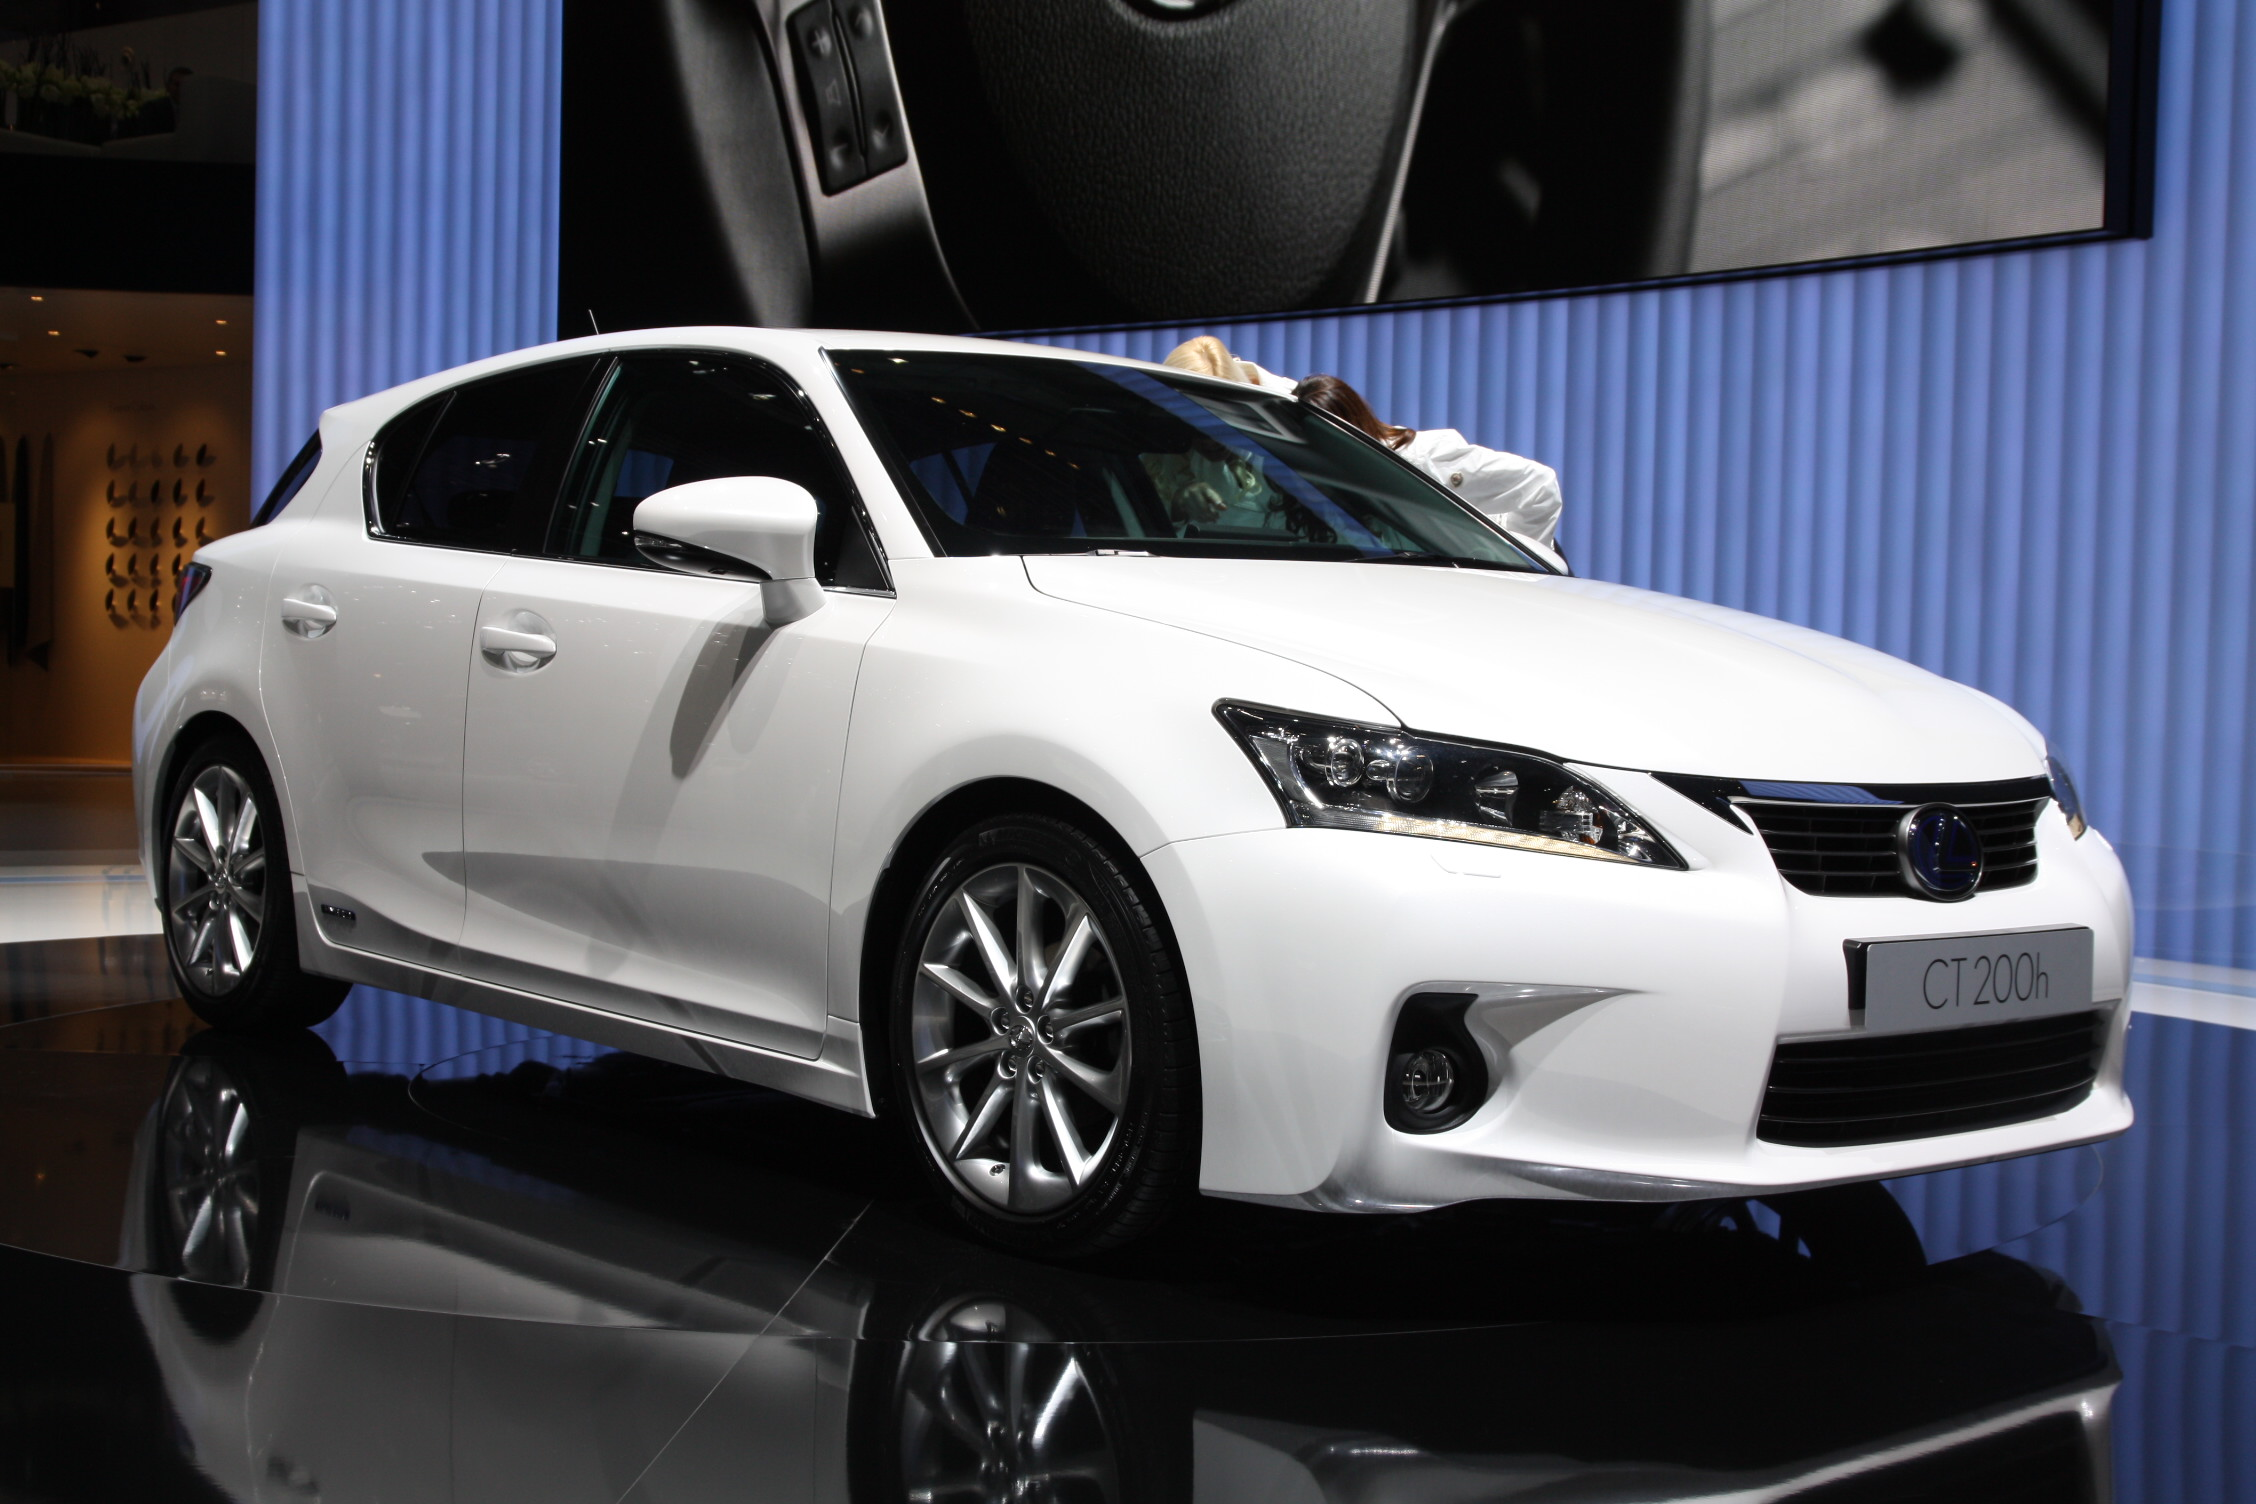 la lexus ct 200h hybride commercialis e aux etats unis d but 2011. Black Bedroom Furniture Sets. Home Design Ideas